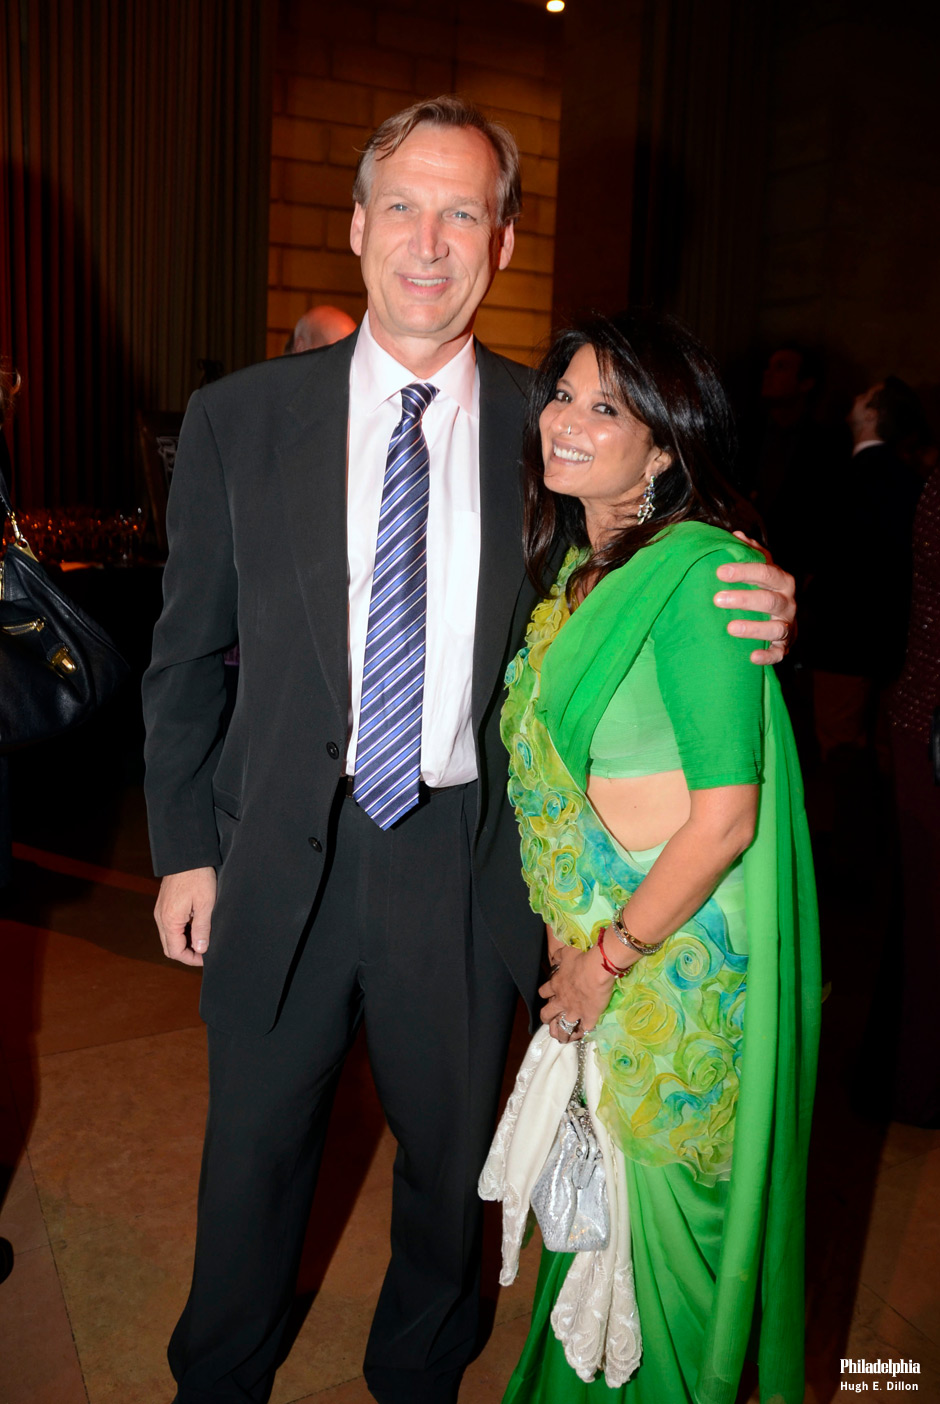 """On October 10, 2013, the Young Friends of the Philadelphia Museum of Art and Timothy Rub, Chief Executive Officer, (with guest Pia RoyChowdhury) hosted nearly 700 guests to celebrate the opening of Léger: Modern Art and the Metropolis, which runs through January 5, 2014. Guests enjoyed """"The City of Lights"""" themed evening, with cabaret music, light fare from STARR catering, cocktails including the Raspberry Beret as the museum was stylishly transformed to evoike the streets of Paris and the Metro."""